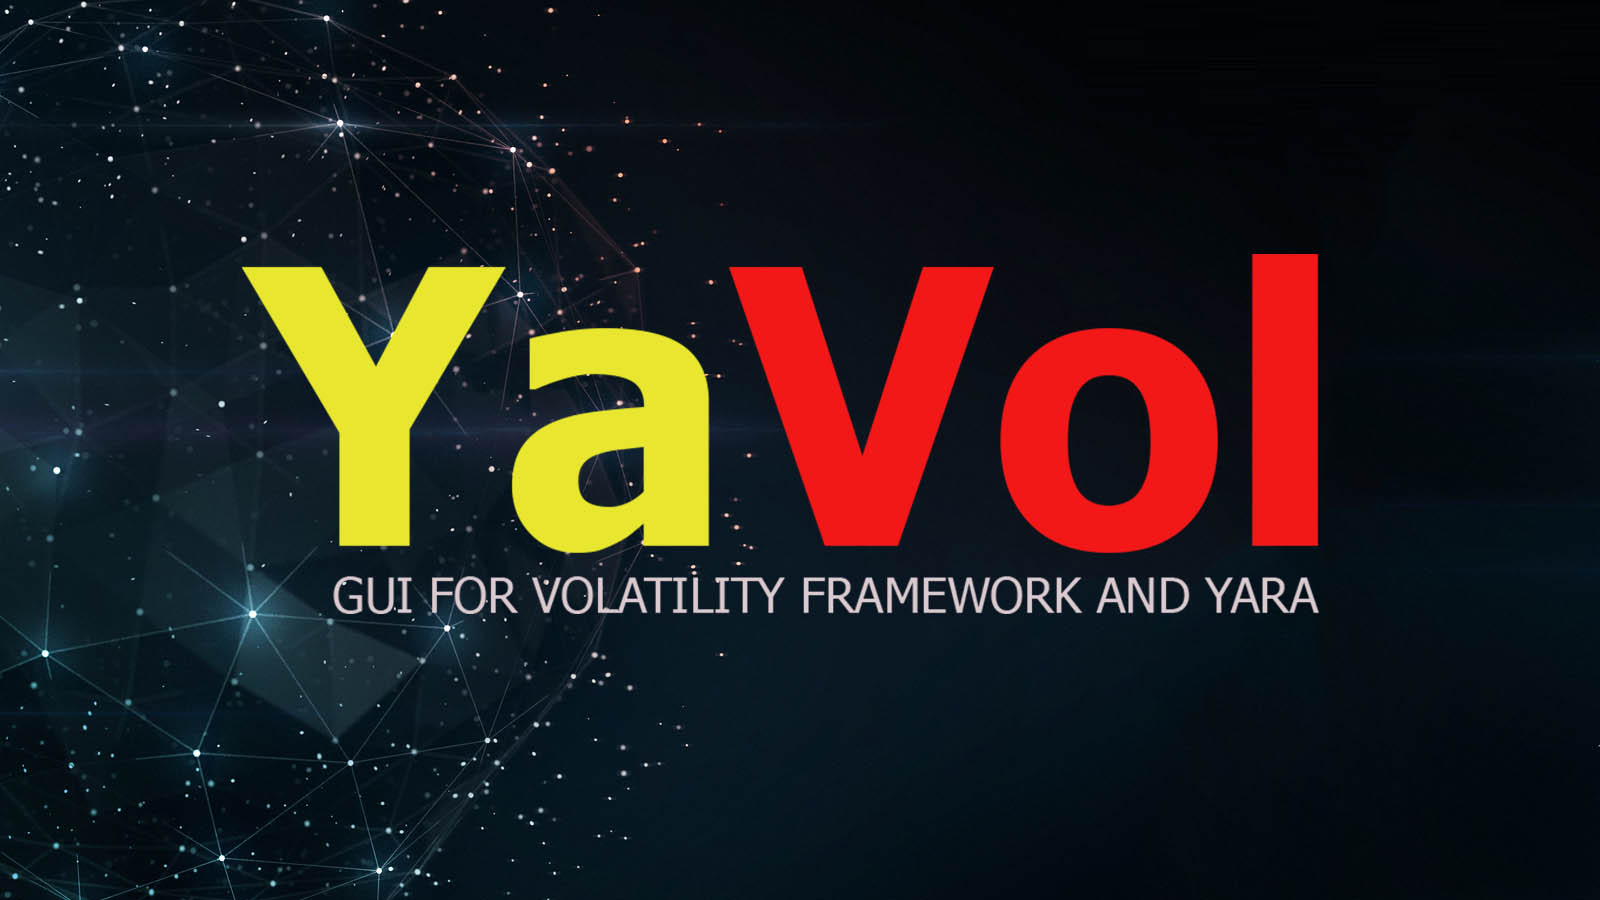 YaVol - GUI for Volatility Framework and Yara